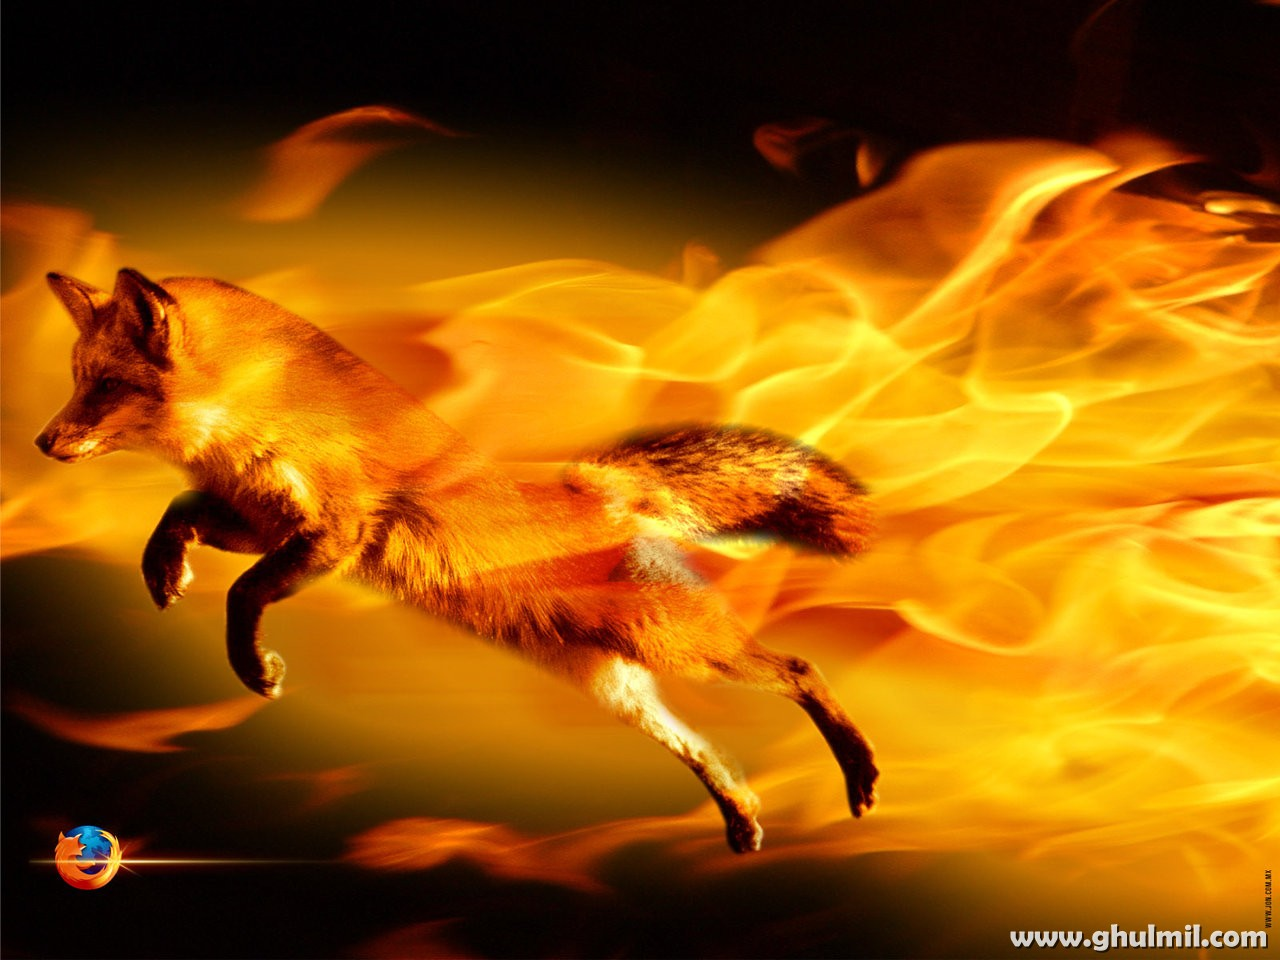 http://4.bp.blogspot.com/-3xGxs97o5vo/TaoJlPrxgxI/AAAAAAAAJvo/g7g2WnMcQD8/s1600/amazing-3d-fire-fox-hd-hi-res-wallpaper-for-computers.jpg